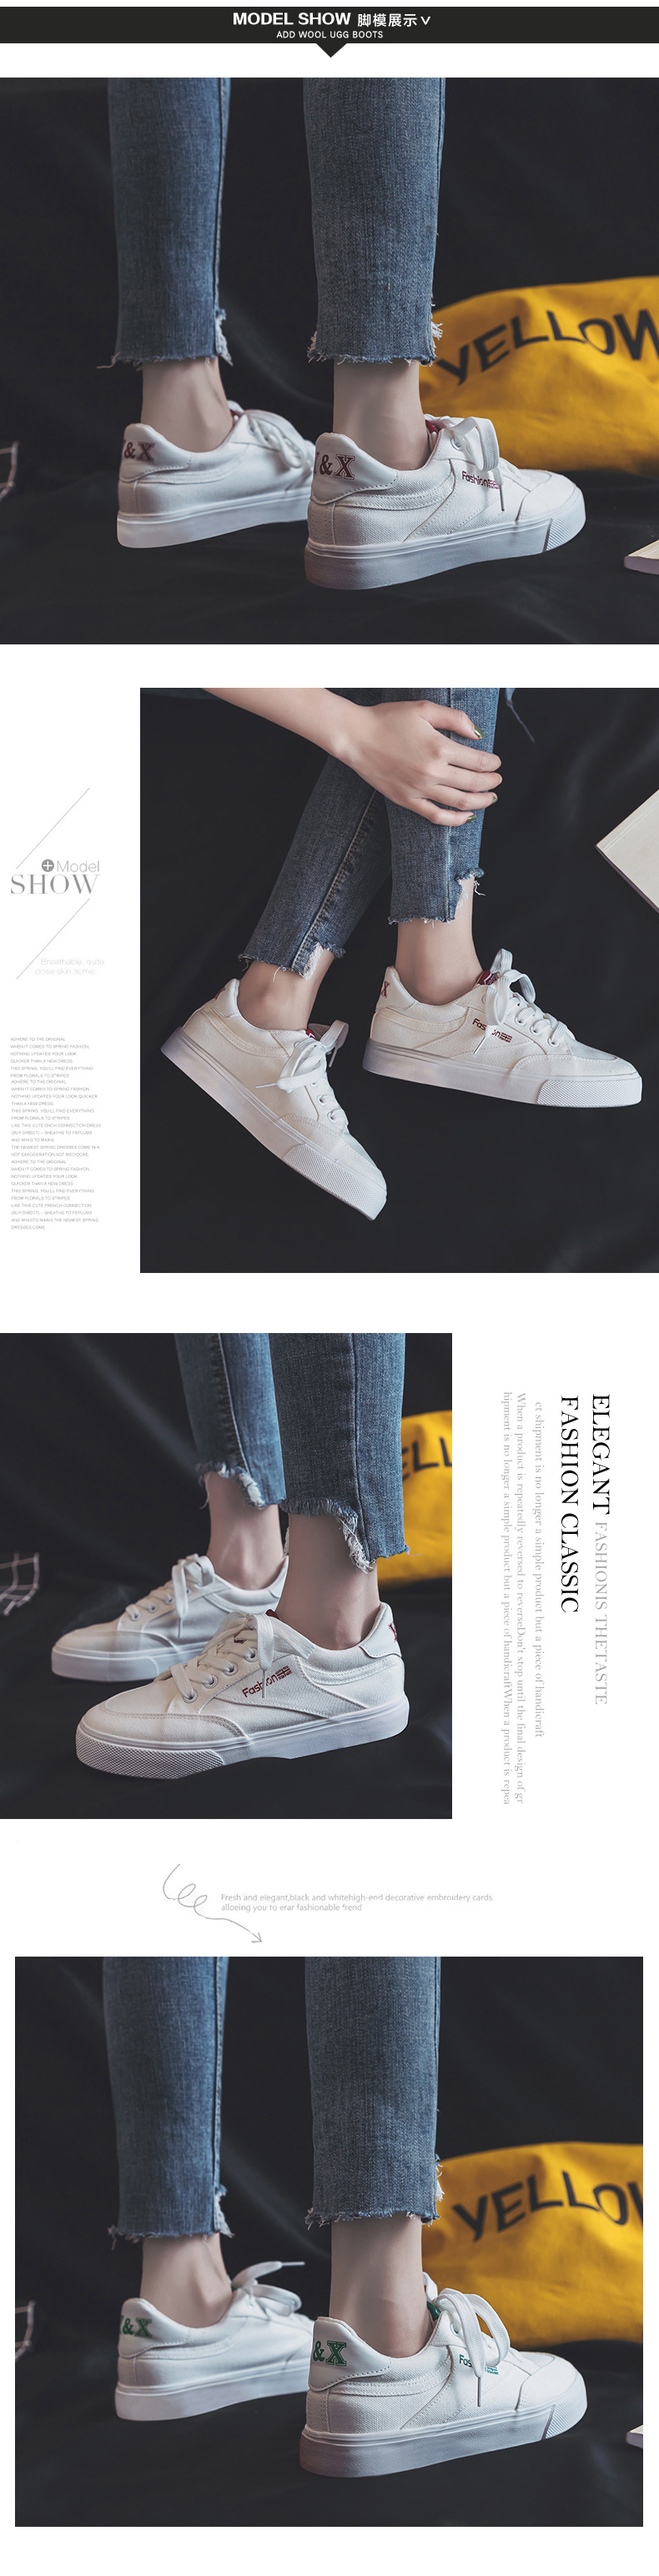 Fashion Style Women Canvas Vulcanized Shoes Simple Design Anti-Skid Sneakers for Female Comfortable Wear Resistant Casual Shoes 10